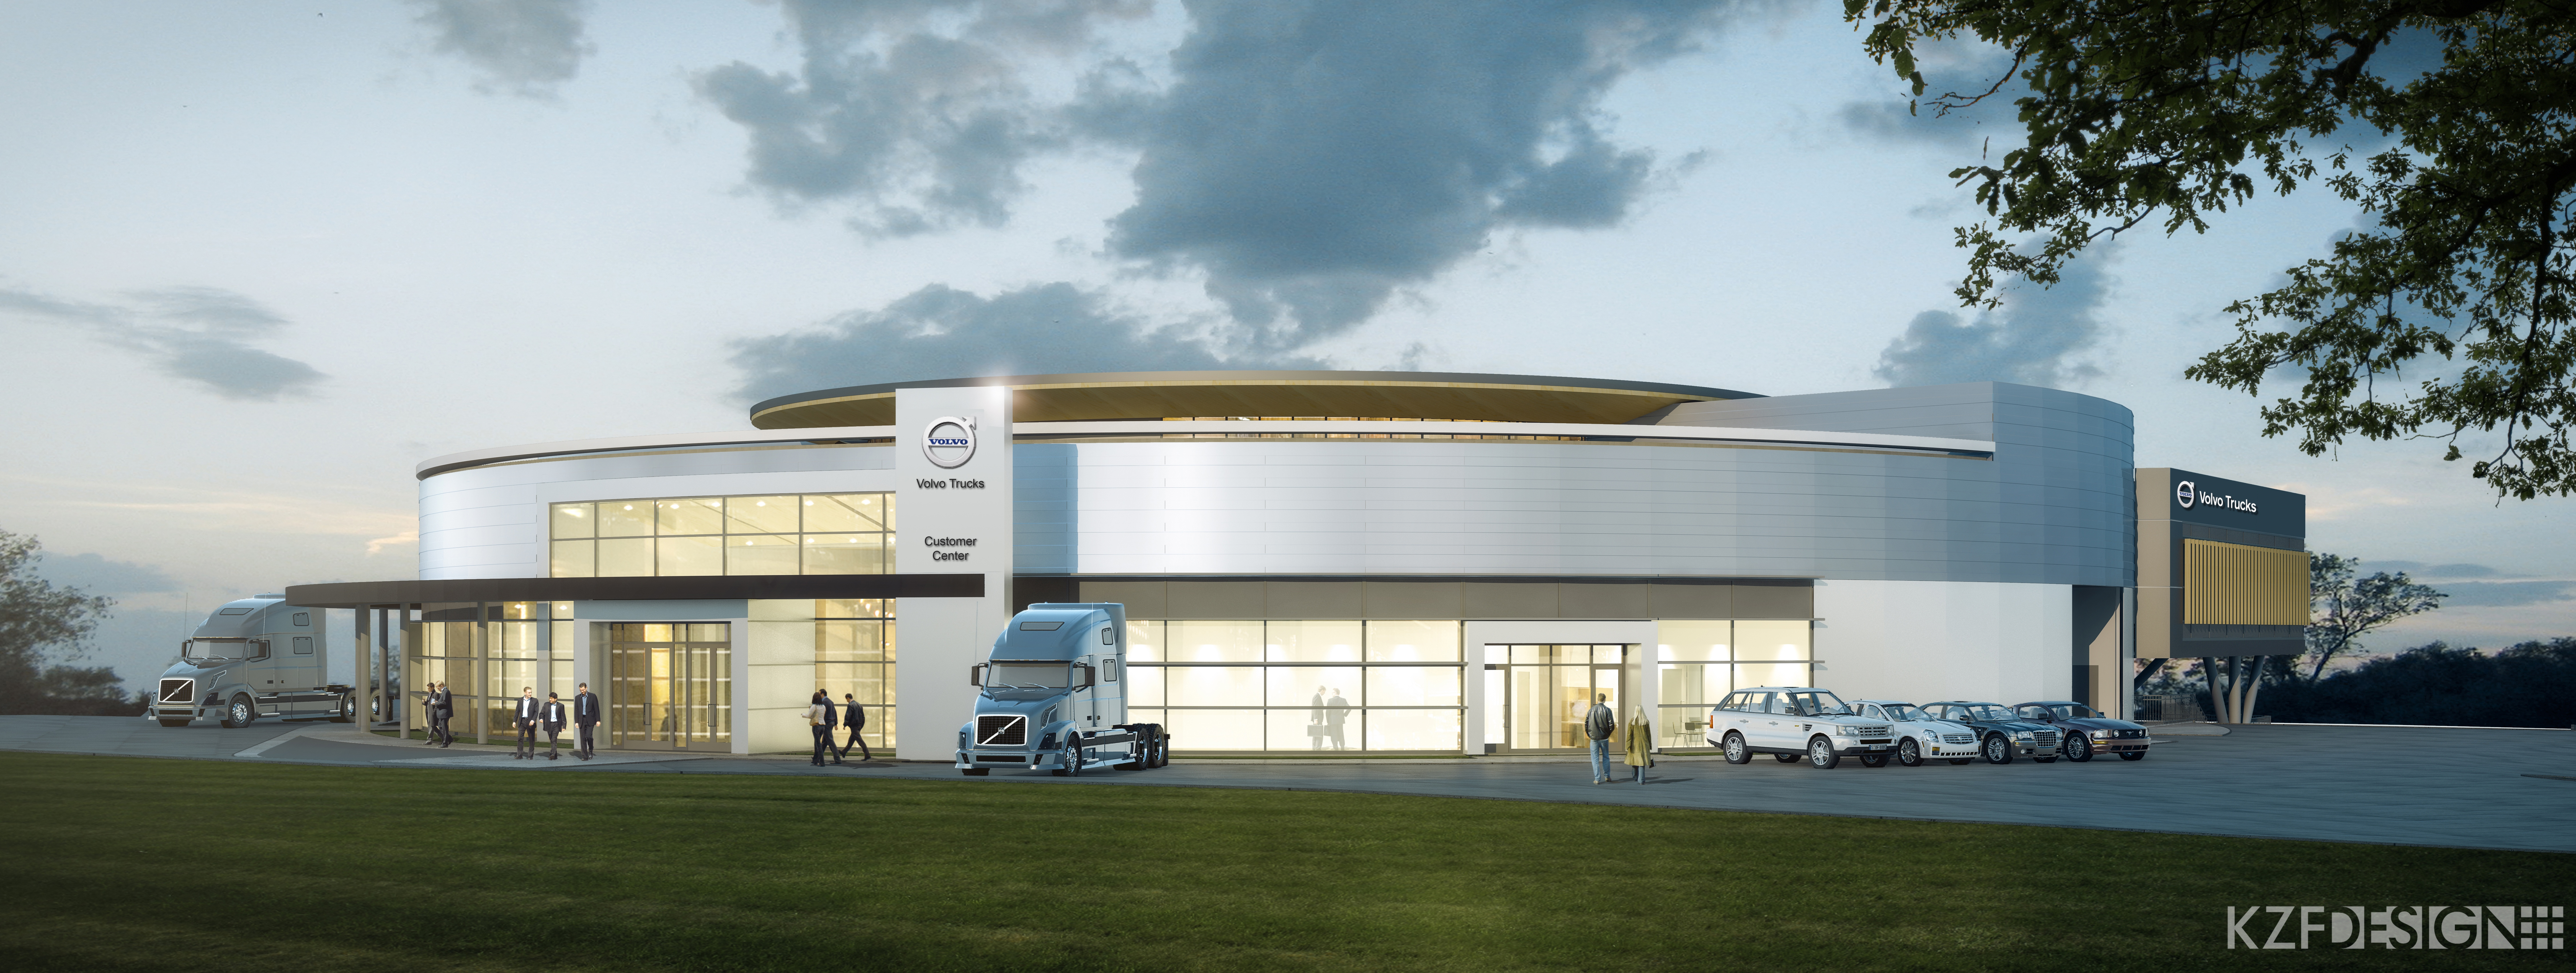 Volvo breaks ground on new Customer Experience Center at Virginia plant - Truck News